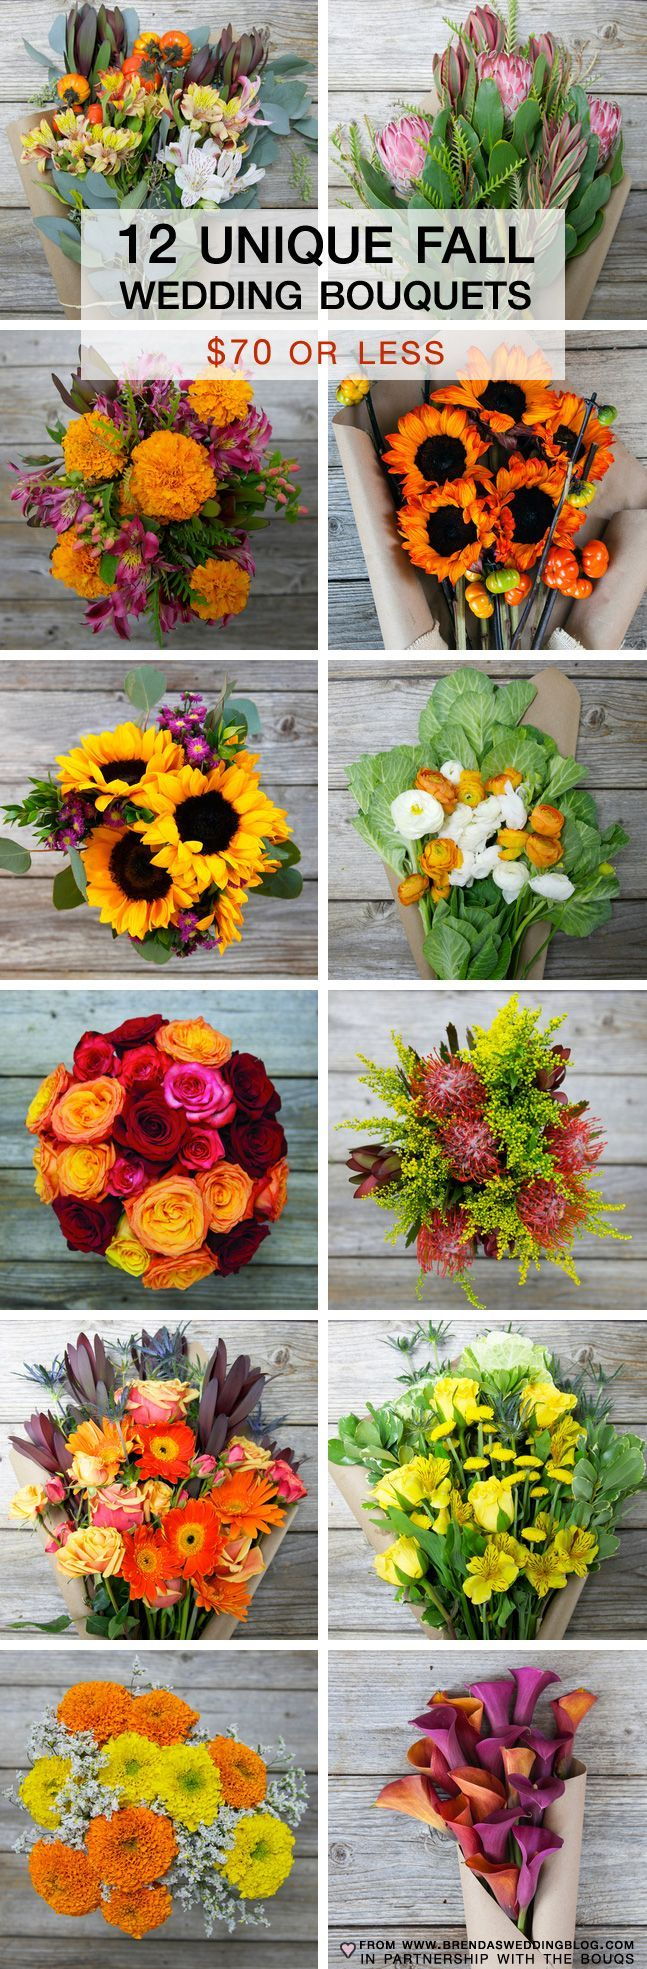 12 Unique Fall Wedding Bouquets {priced between $40 - $70}